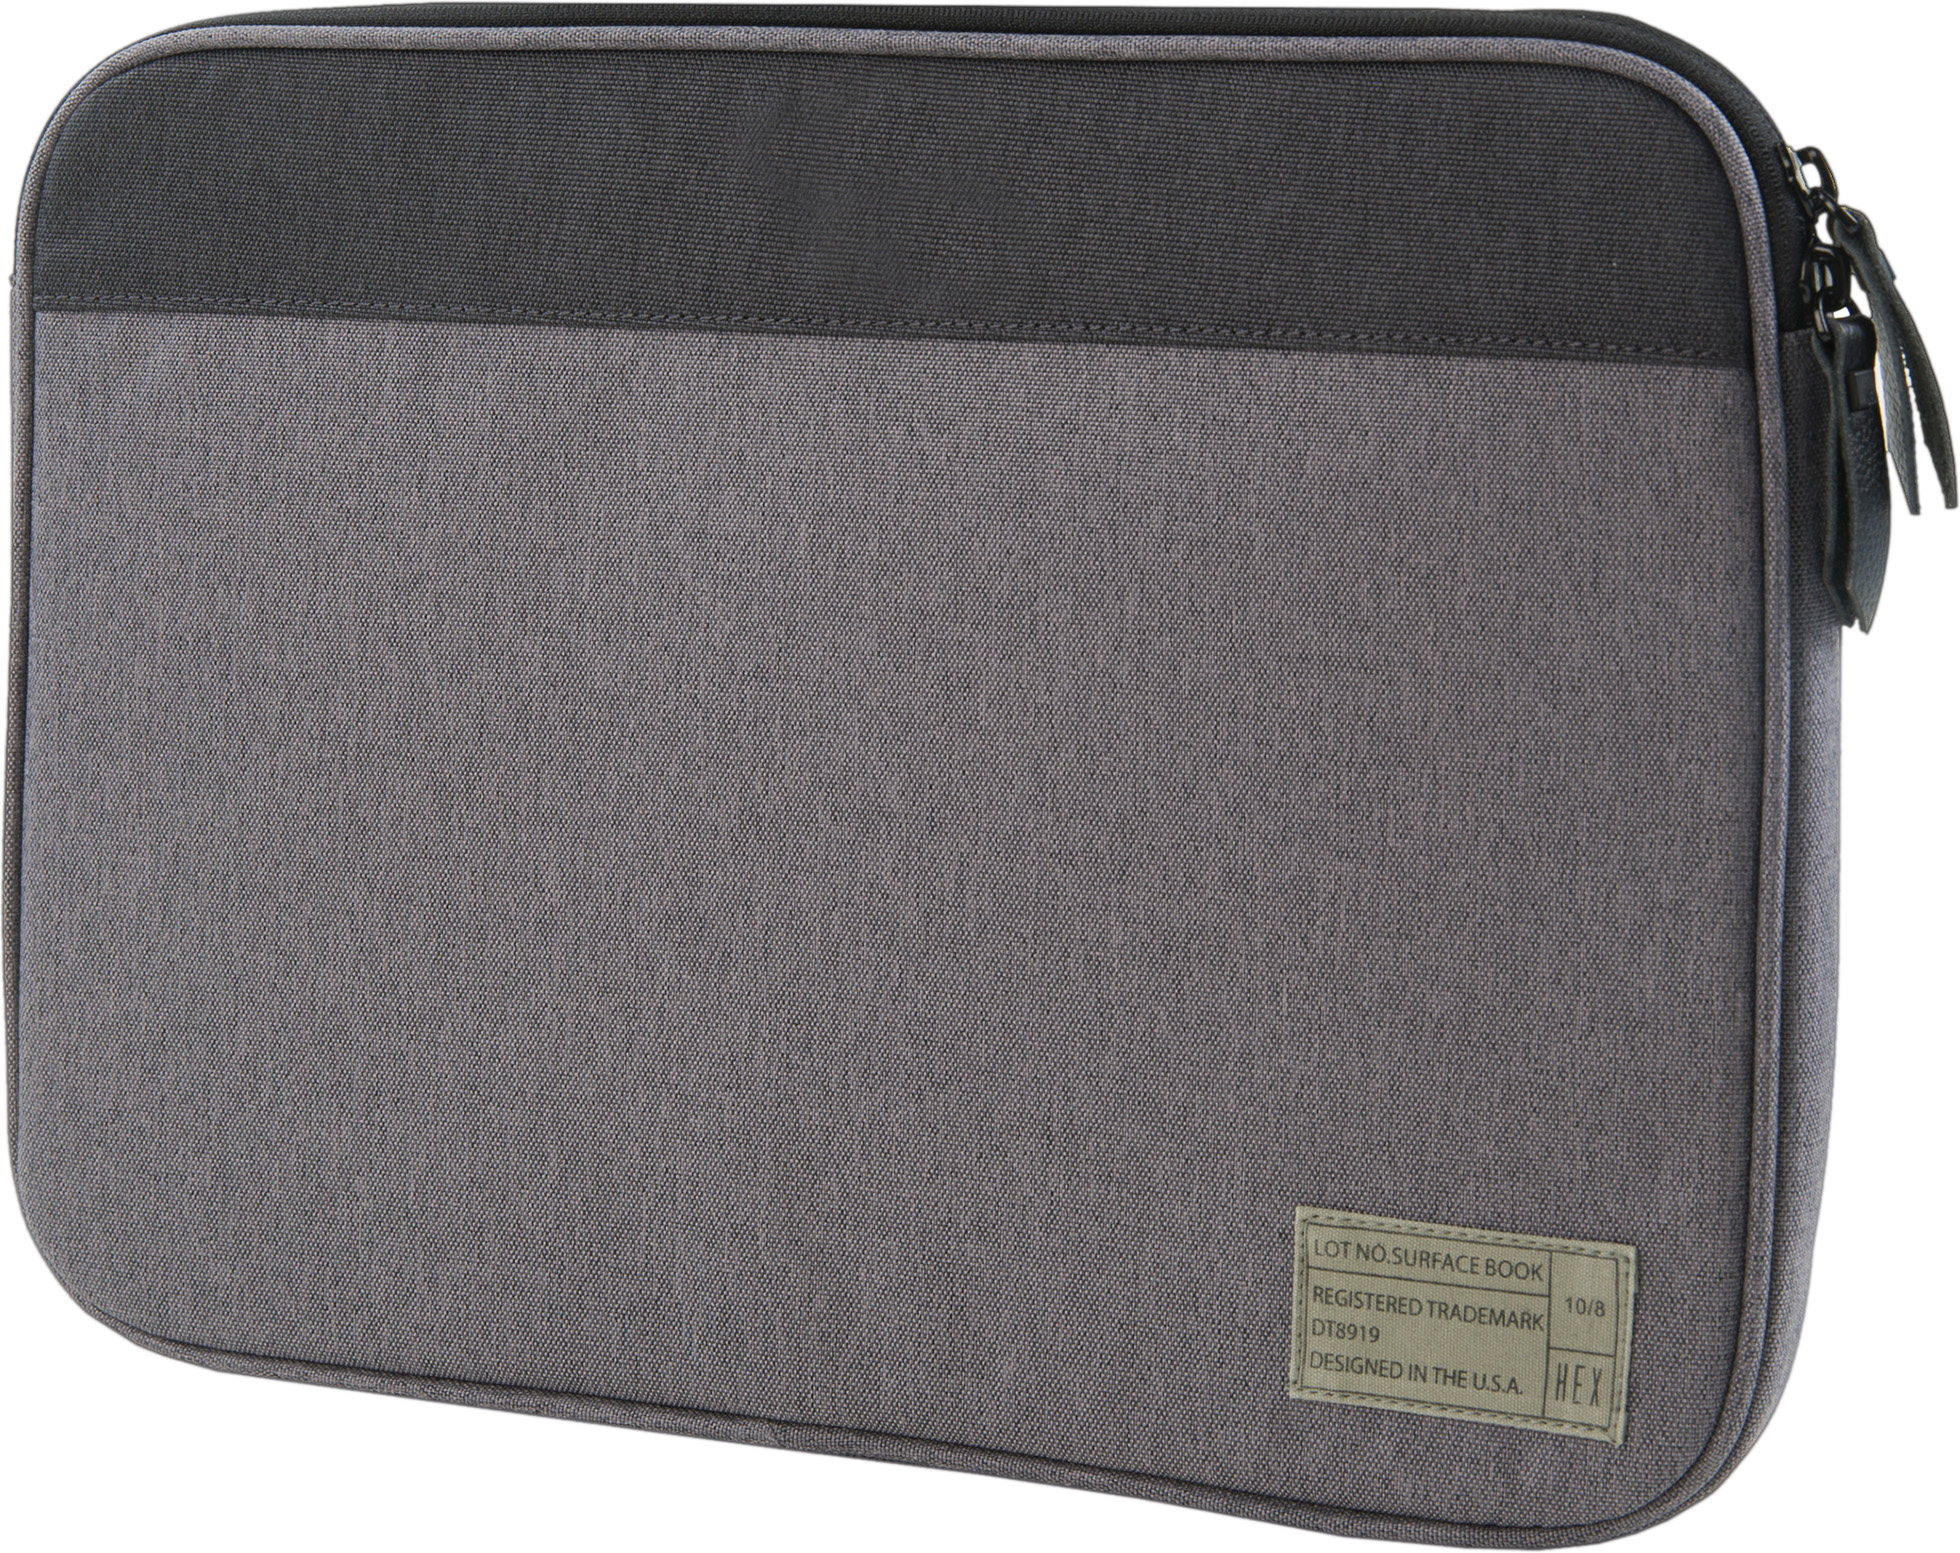 HEX Surface Book sleeve with rear pocket (grey)